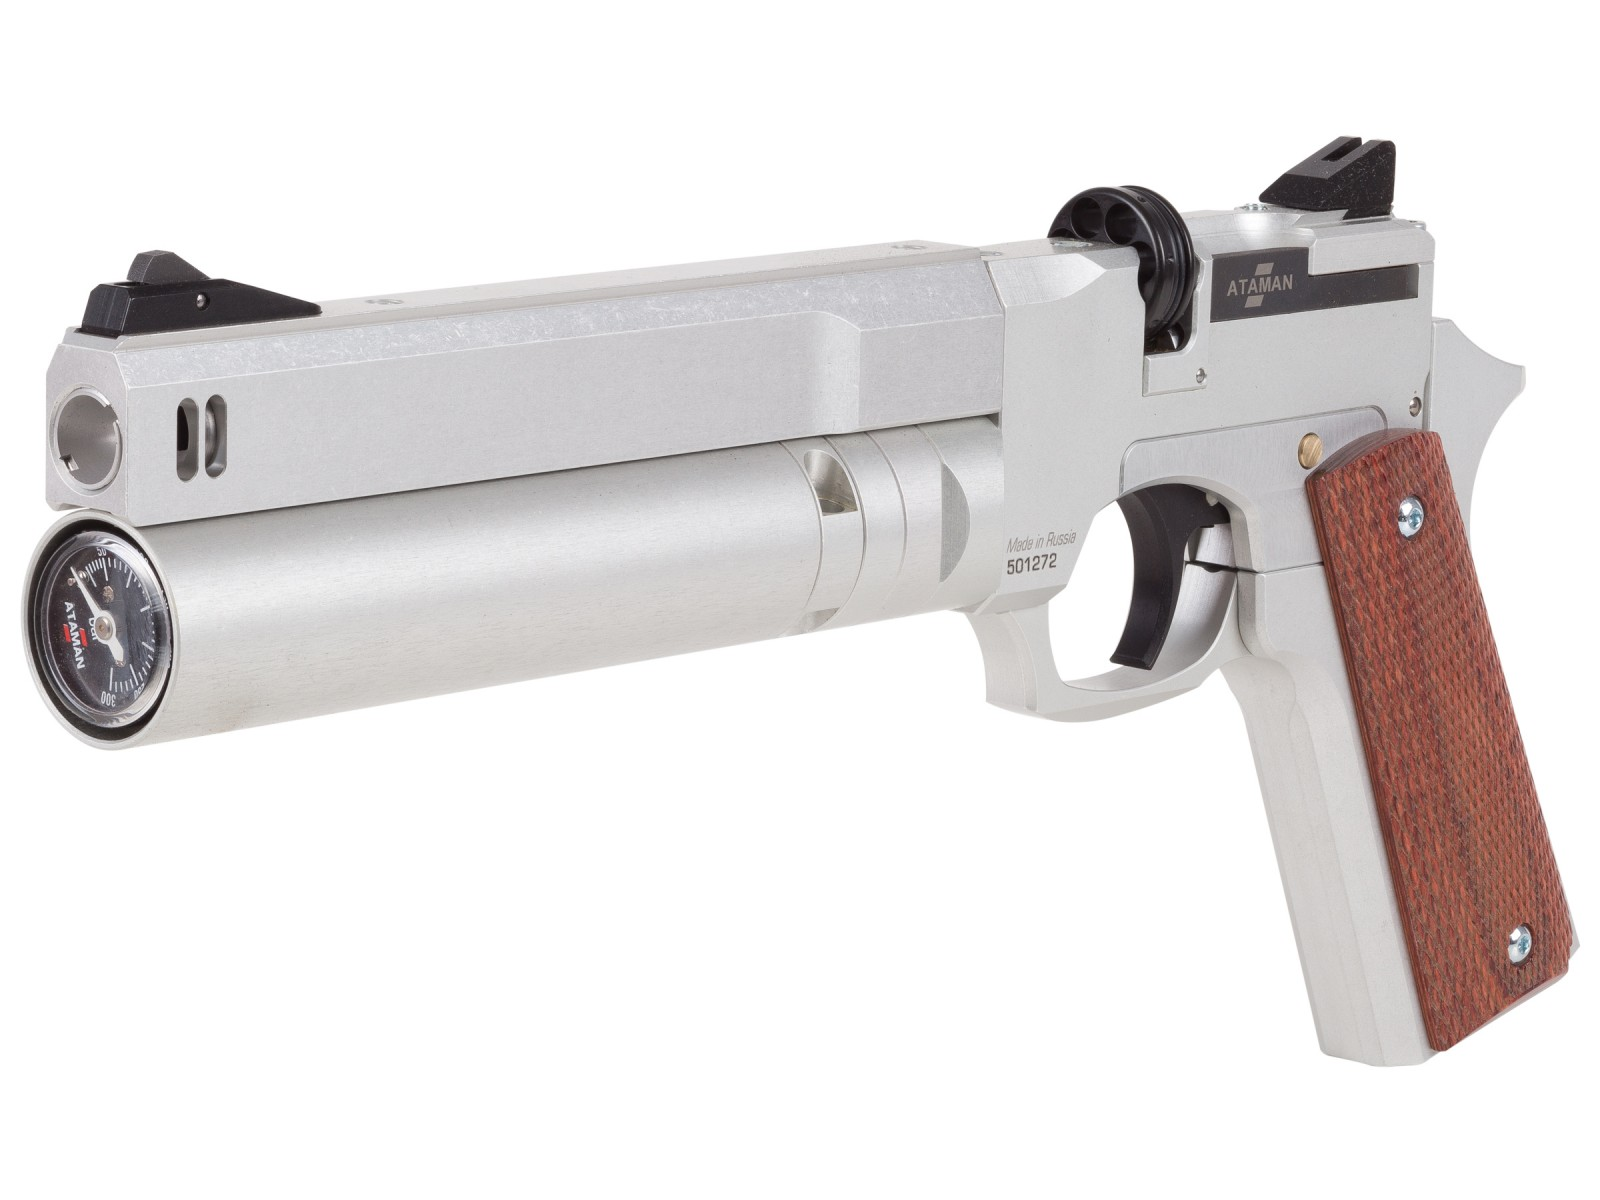 Ataman AP16 Regulated Compact Air Pistol